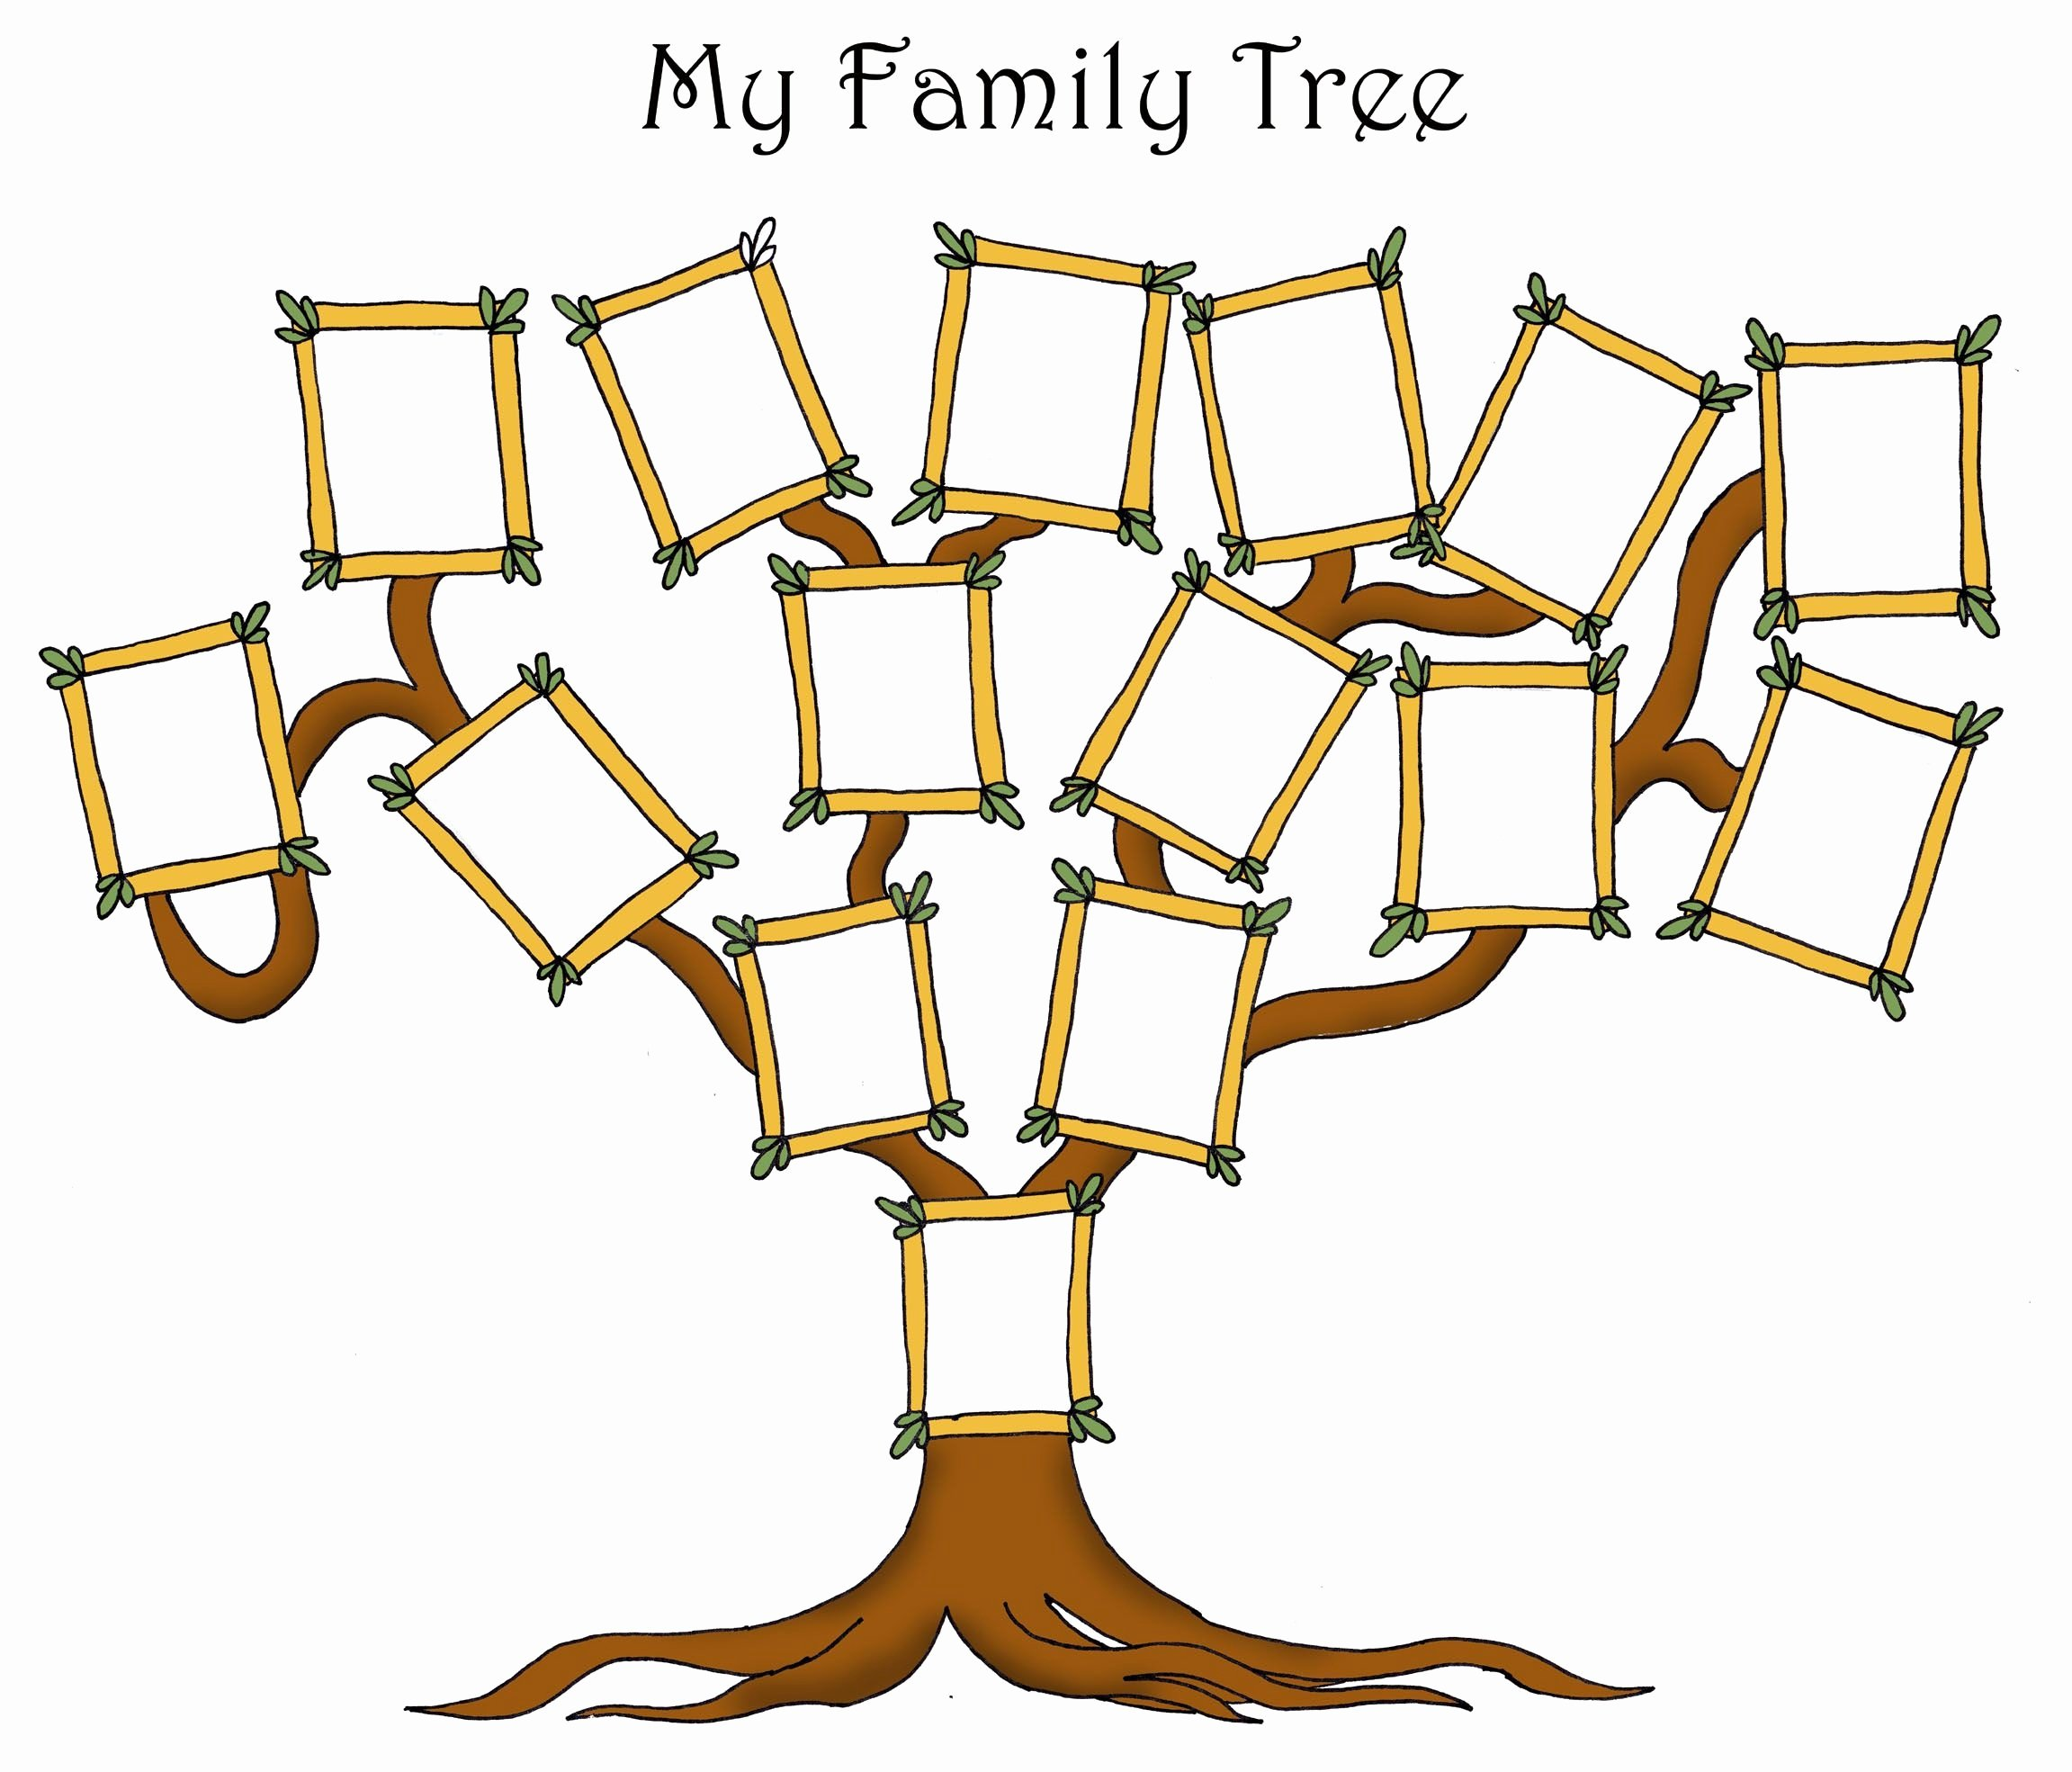 Free Printable Family Tree Elegant Free Editable Family Tree Template Daily Roabox